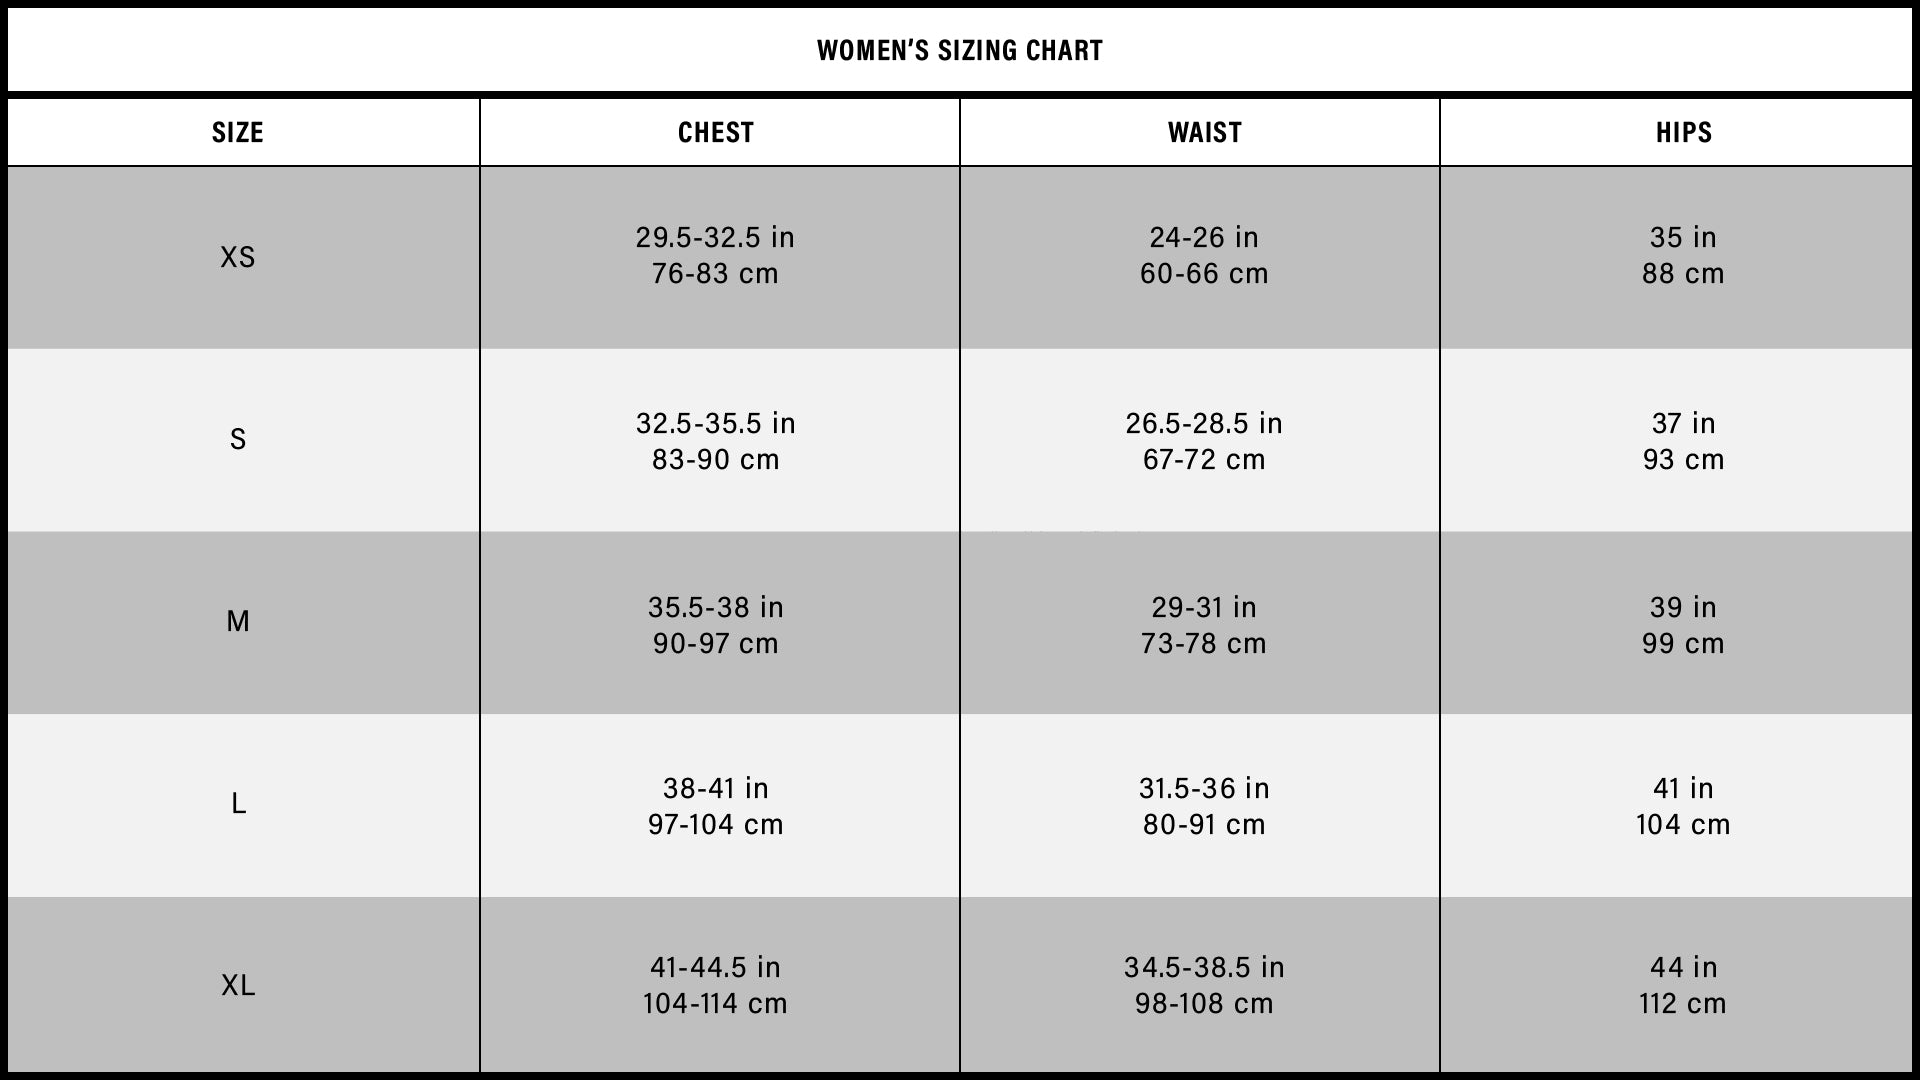 PAINKLLR Womens Sizing Chart Measurements